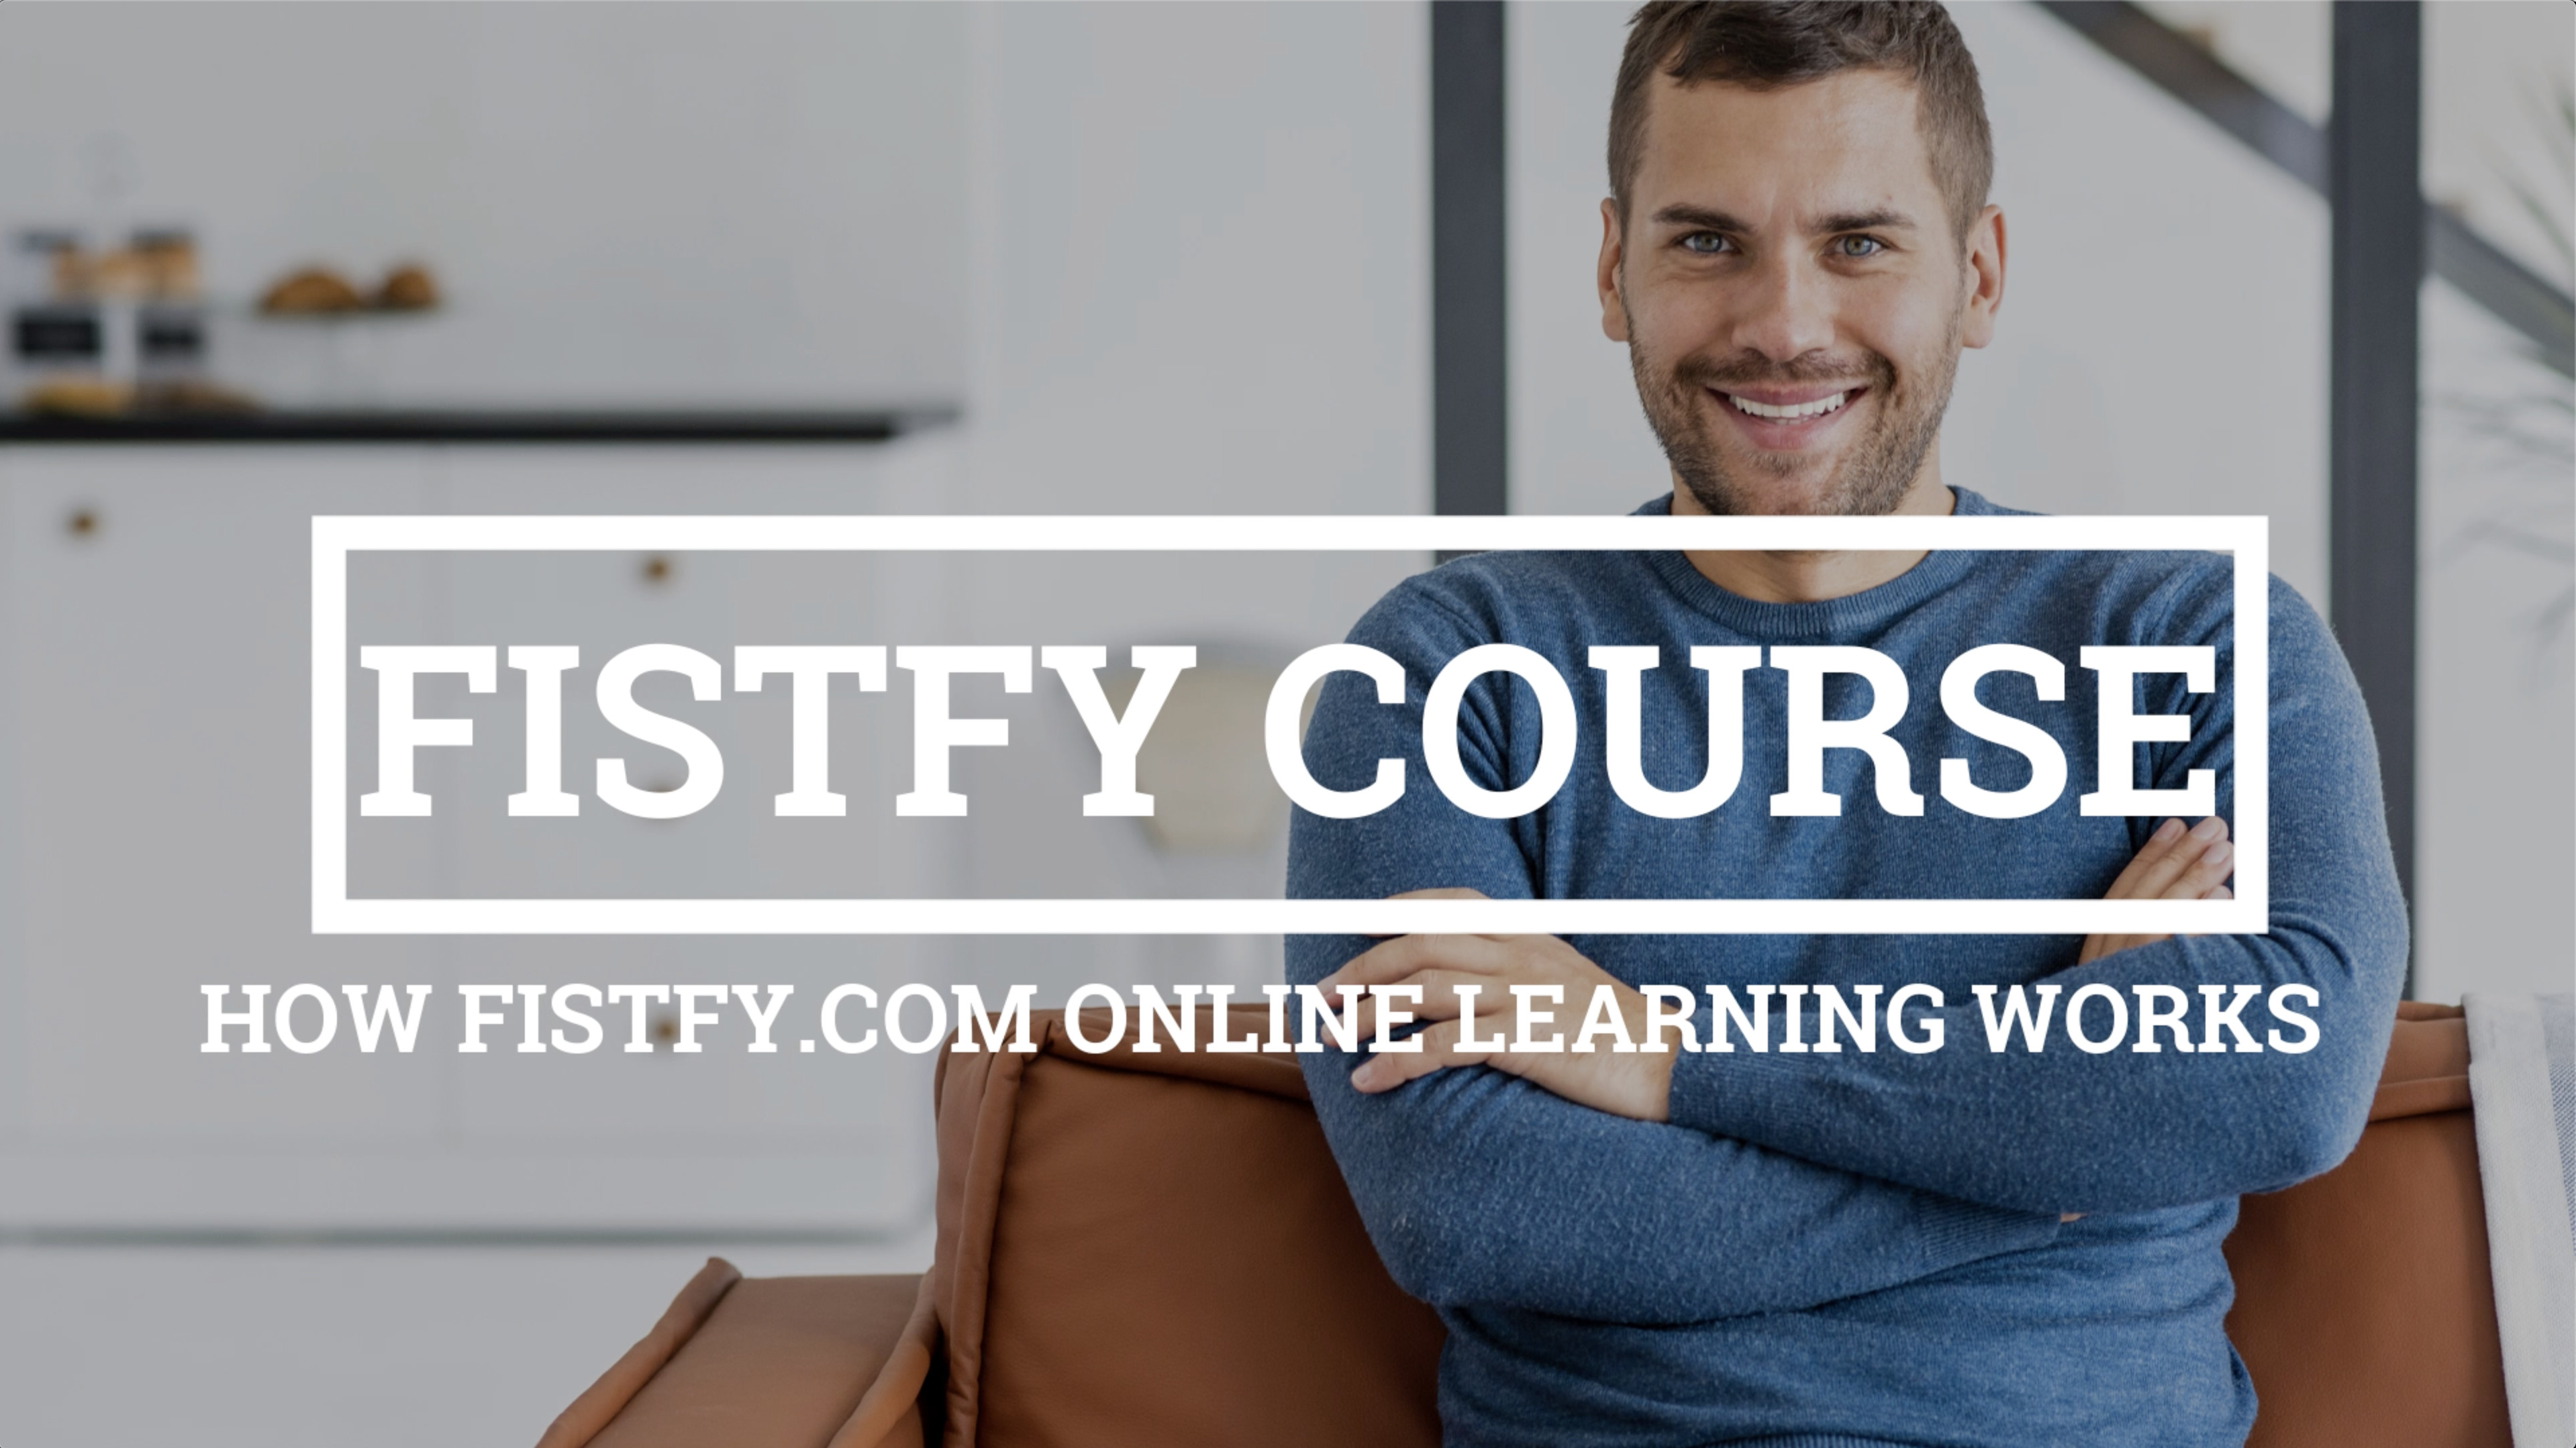 This is How to Fistfy Online Learning works – How to take an Fistfy online course?